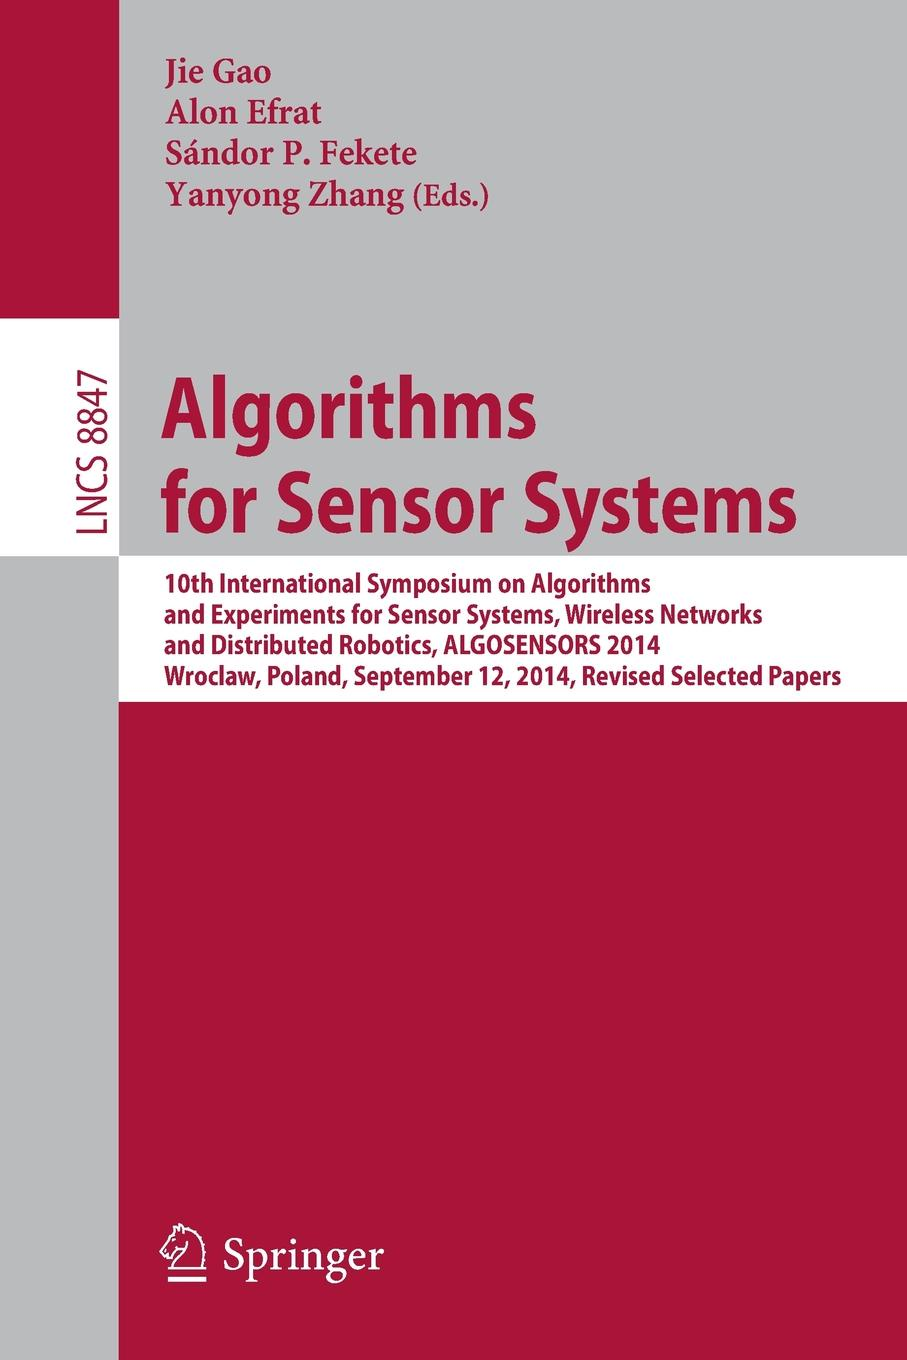 купить Algorithms for Sensor Systems. 10th International Symposium on Algorithms and Experiments for Sensor Systems, Wireless Networks and Distributed Robotics, ALGOSENSORS 2014, Wroclaw, Poland, September 12, 2014, Revised Selected Papers дешево